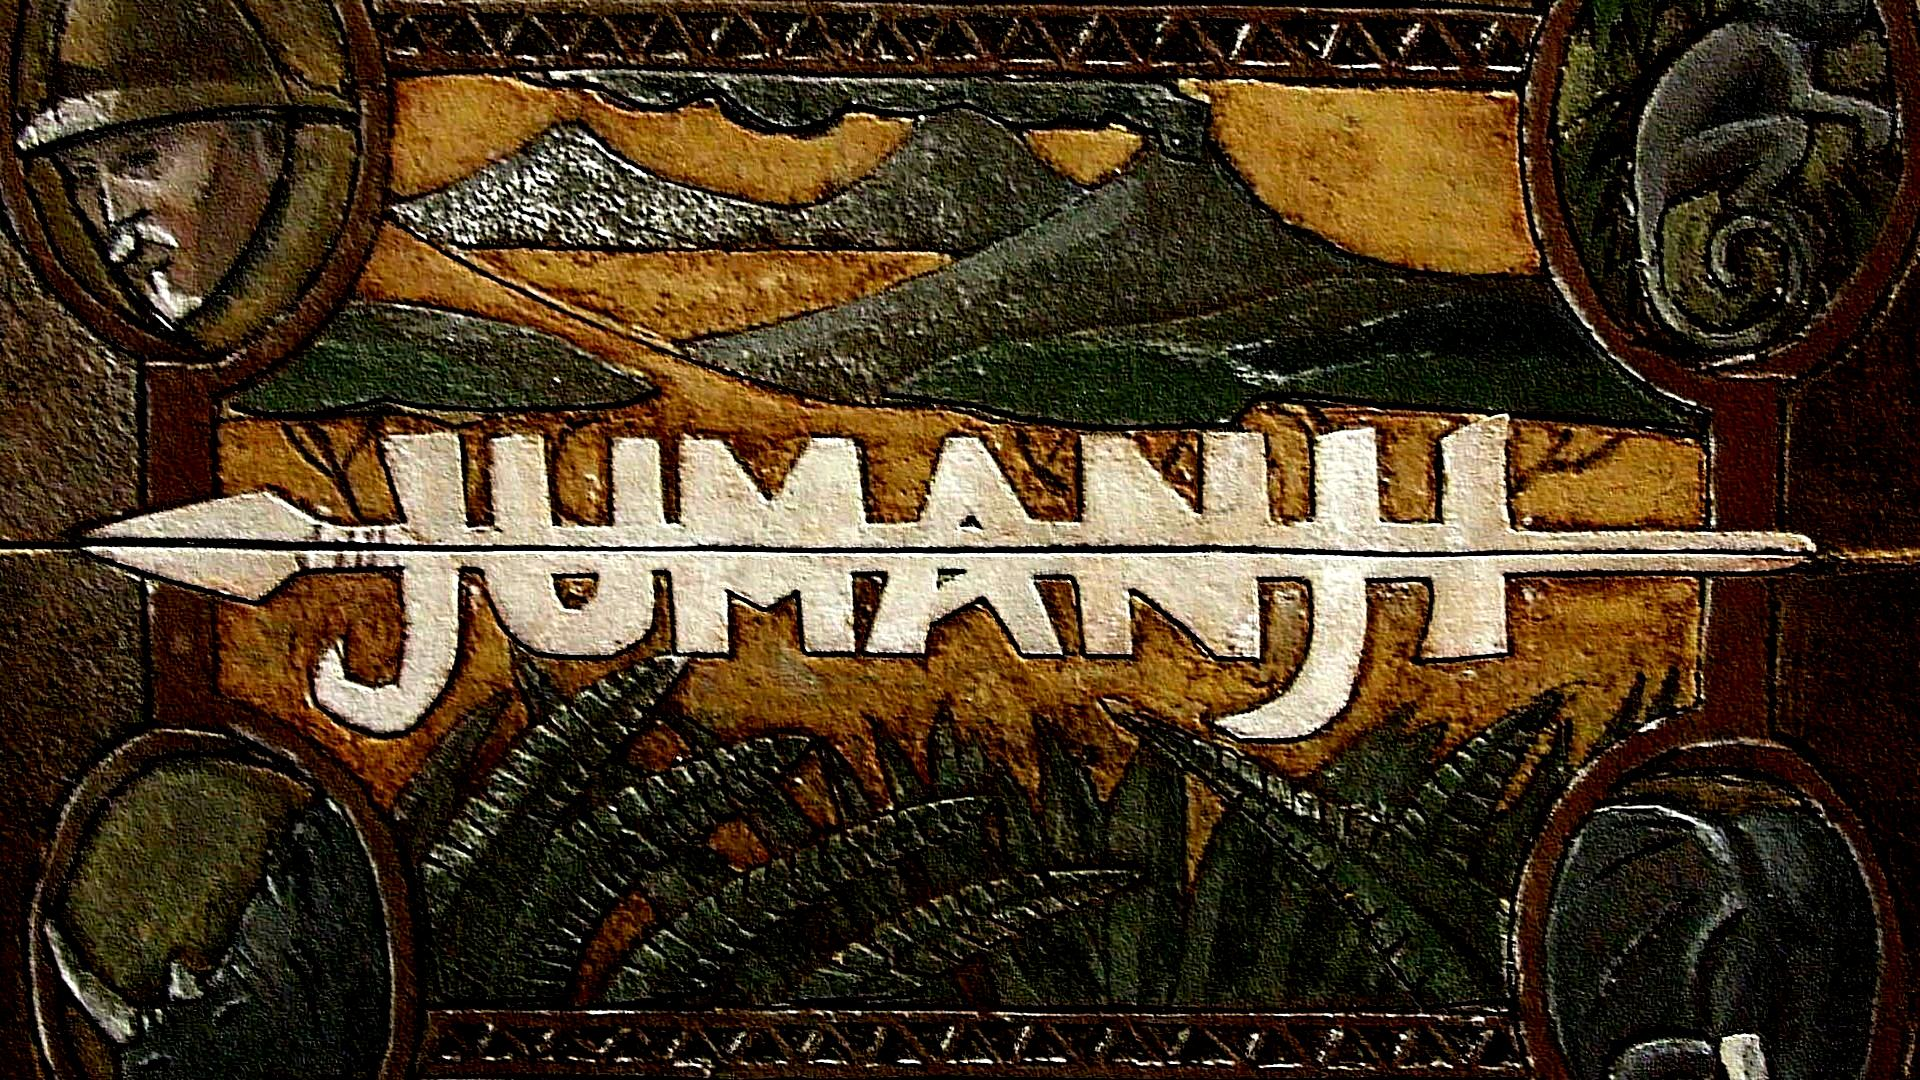 More Bad News About The Upcoming Jumanji Remake Nobody Asked For jumanji wallpaper robin williams tribute by professoradagio d7v6irj